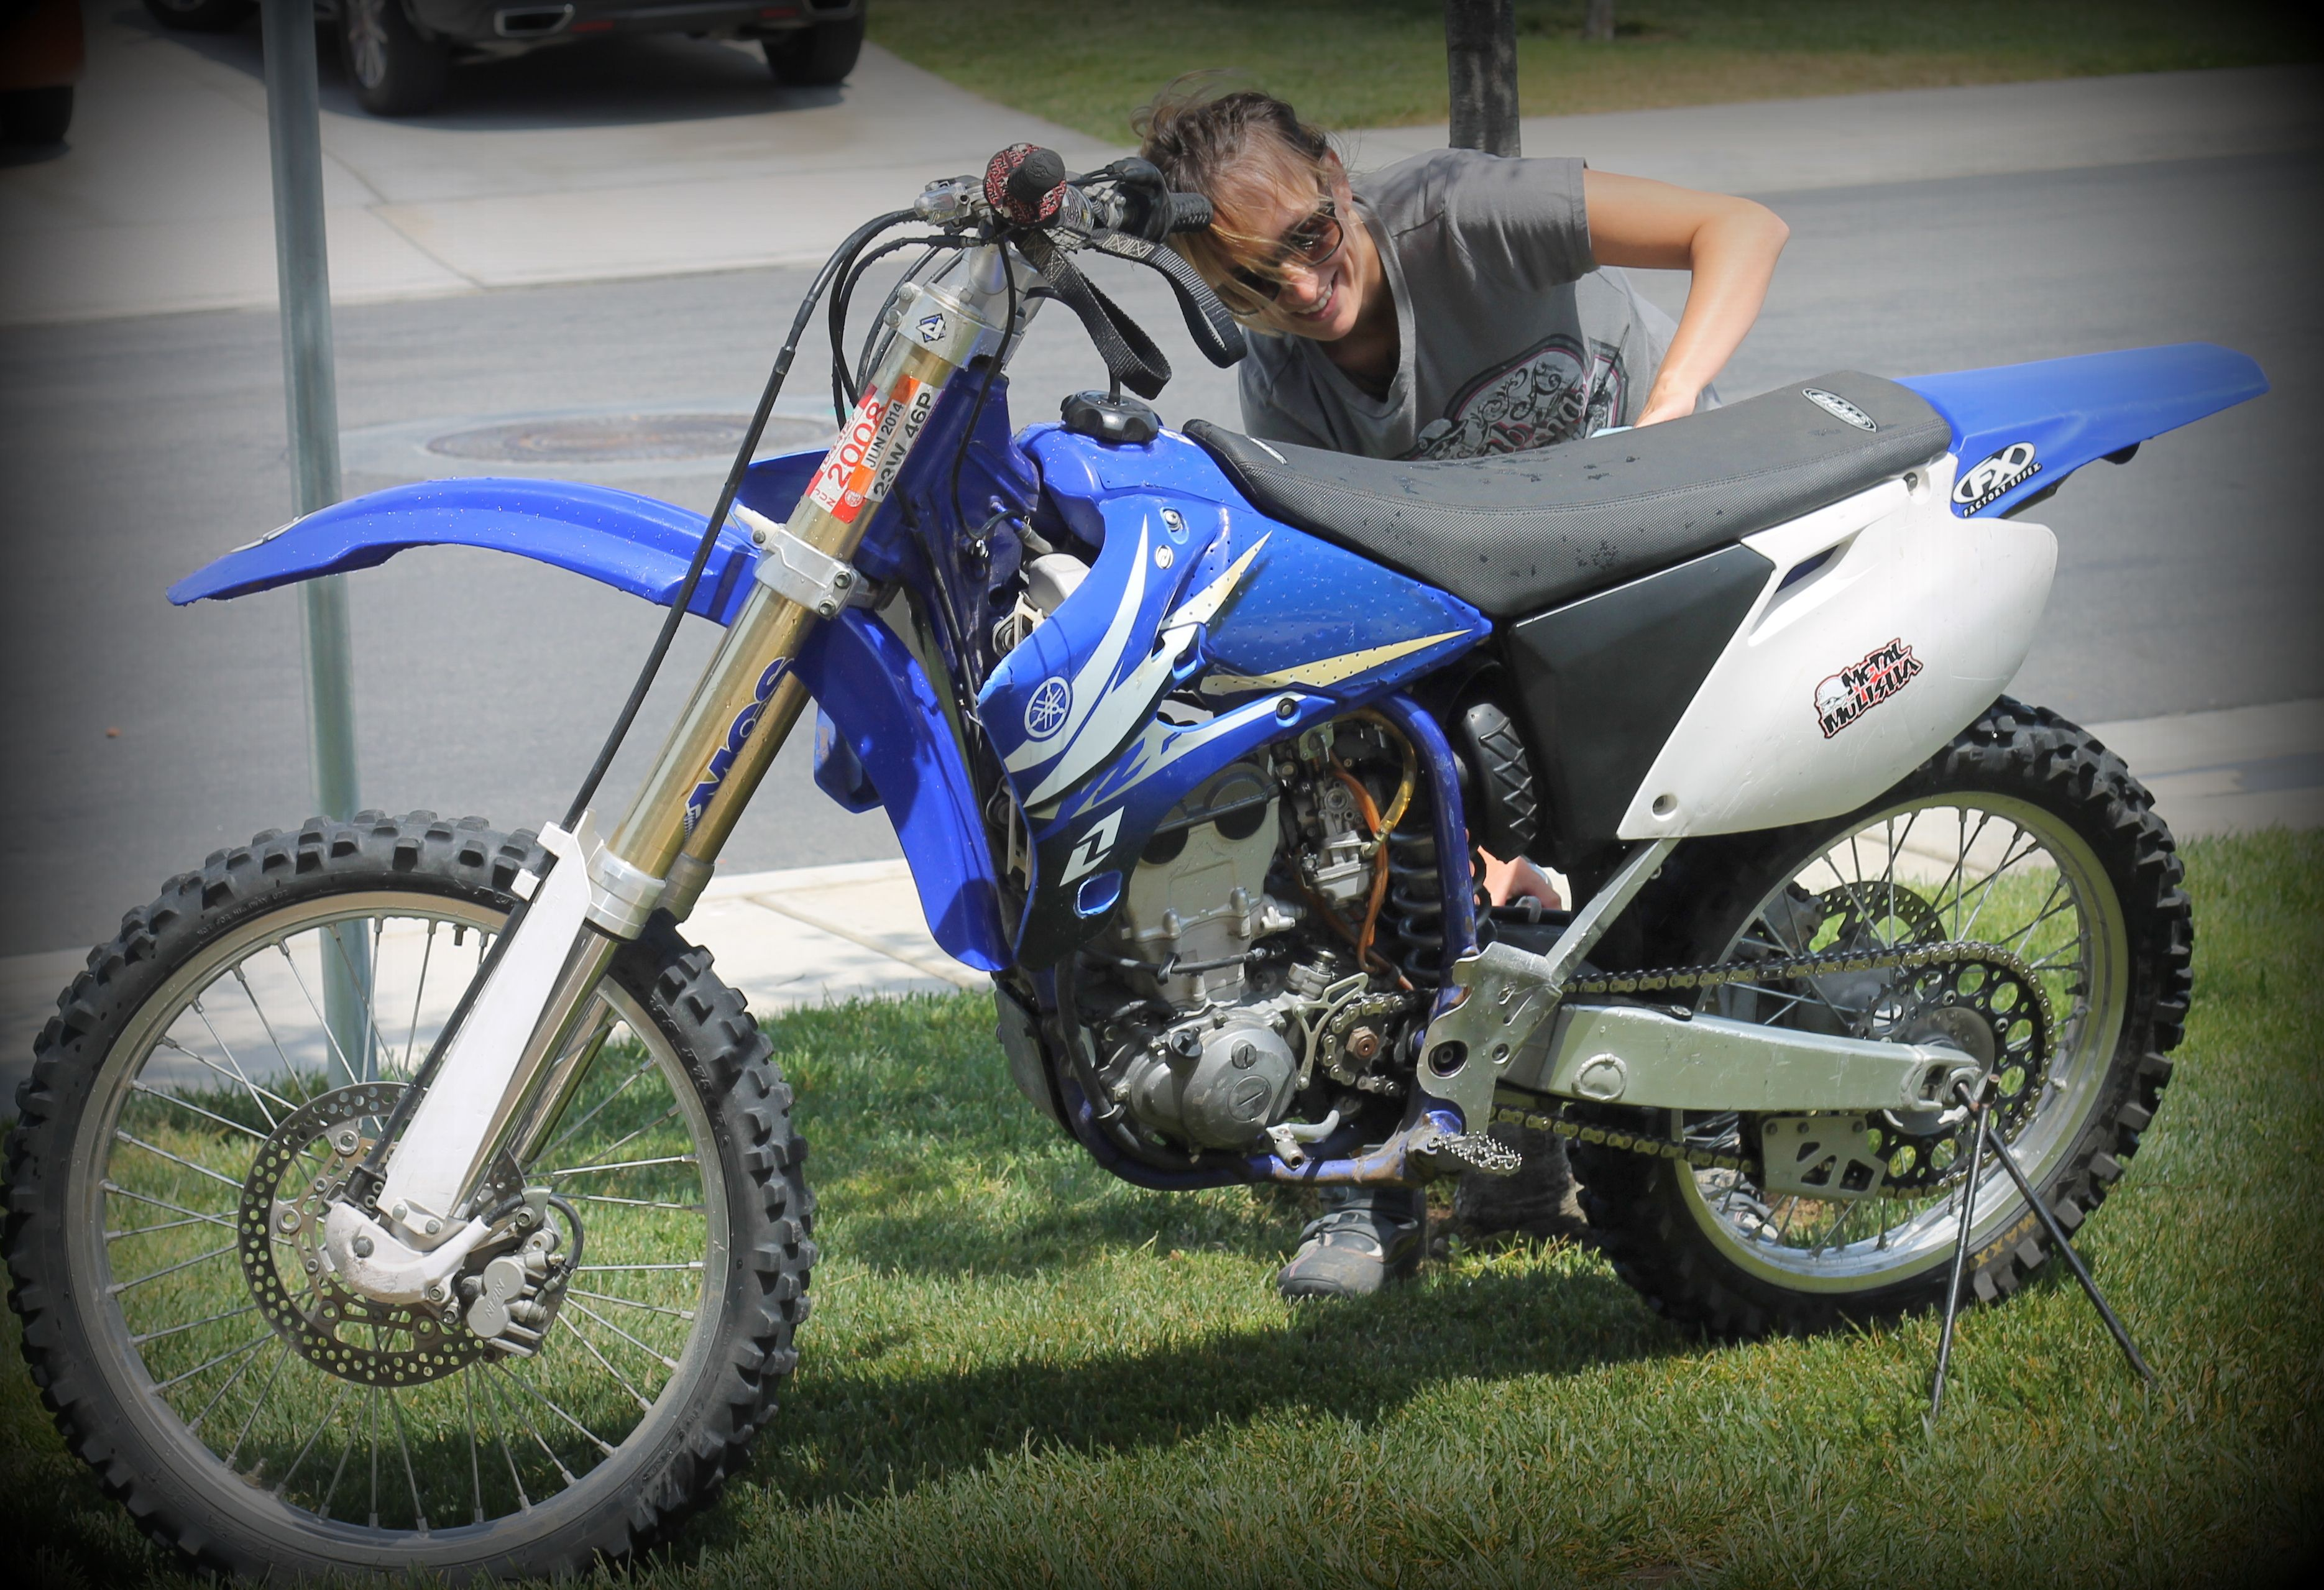 Washing Polishing My Yamaha YZ 250F Dirt Bike I Want New Decals But Can